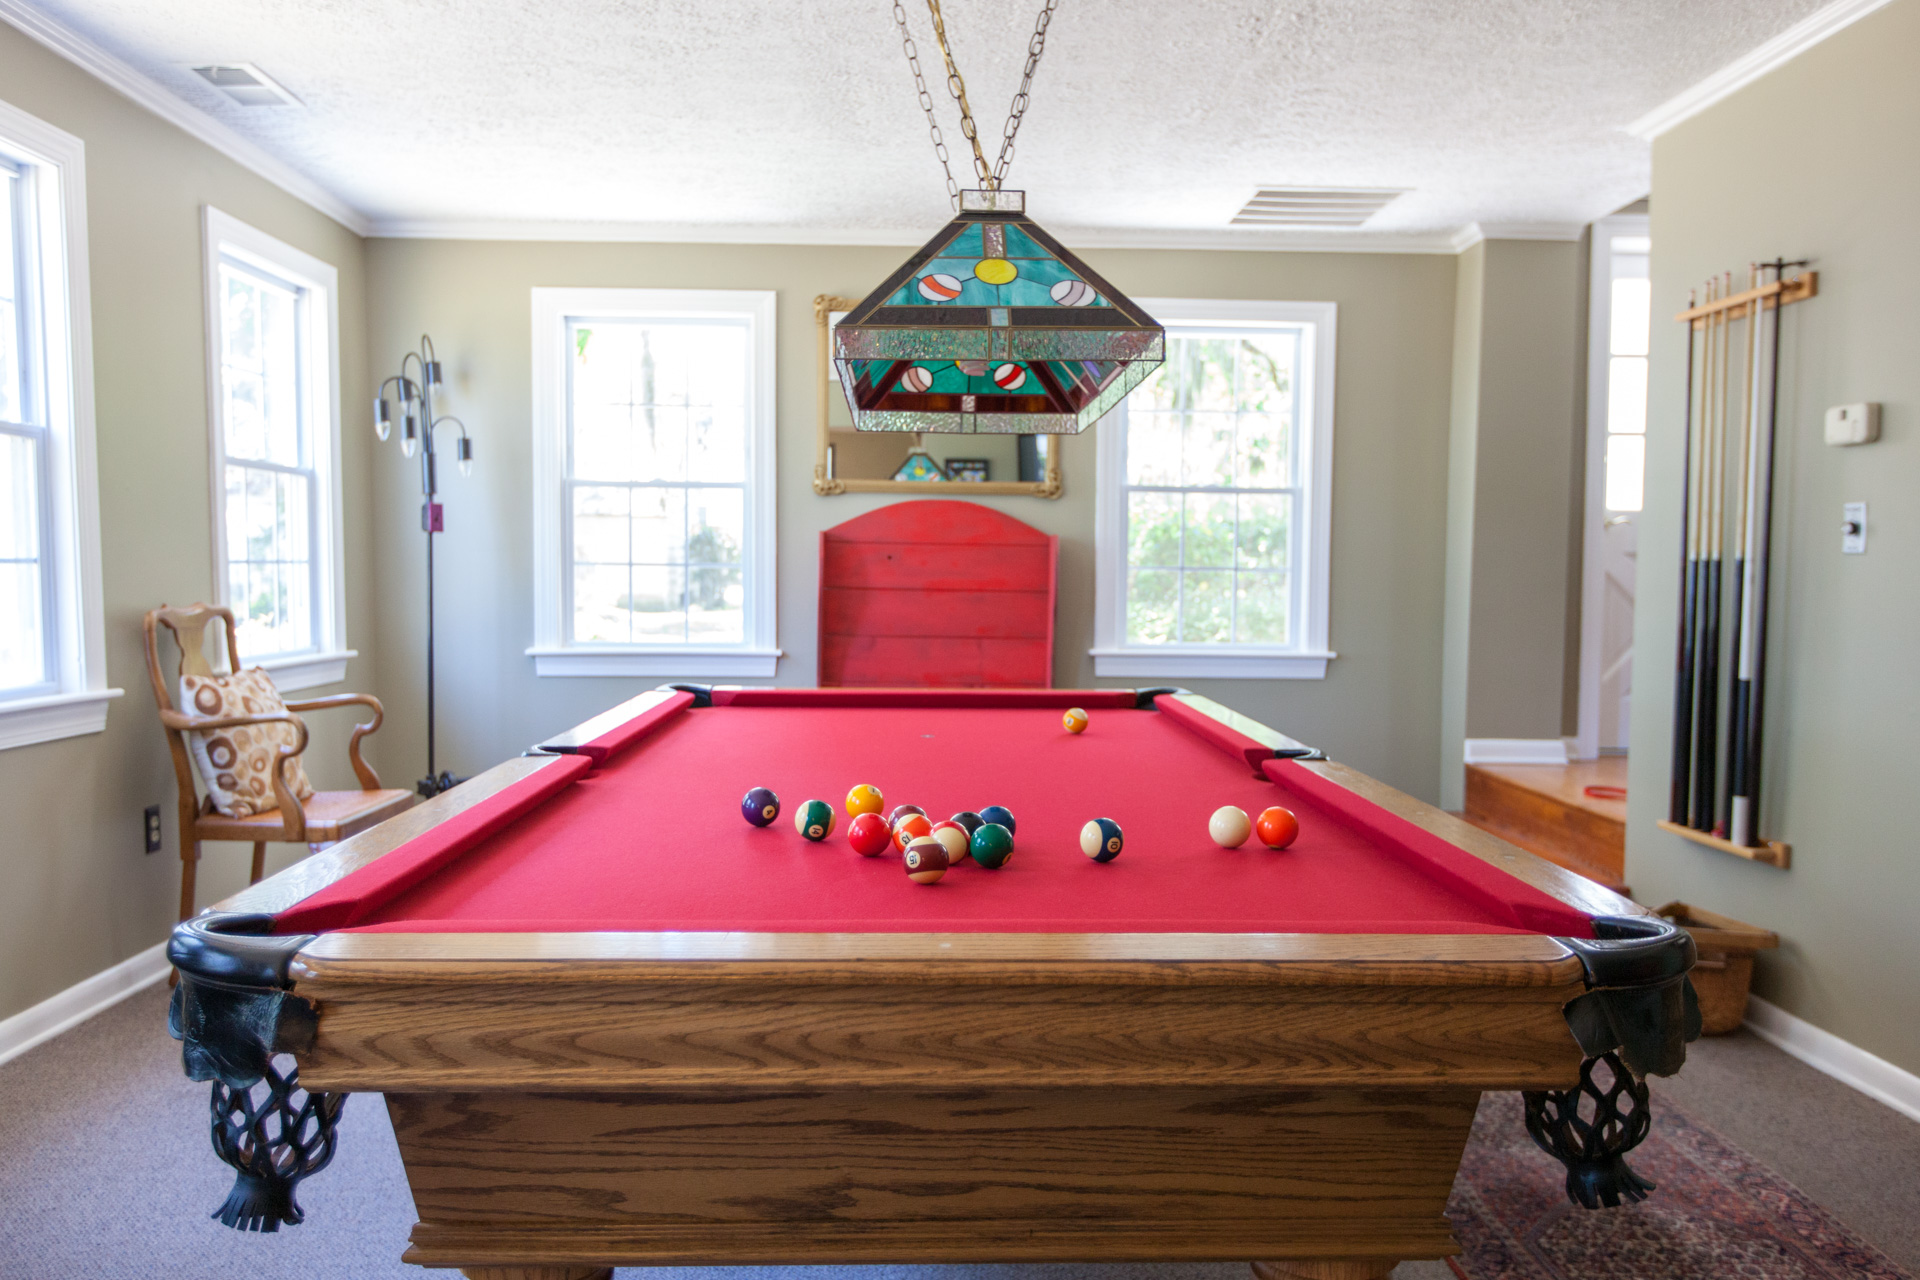 Pool_BarRoom_IMG_7164.jpg